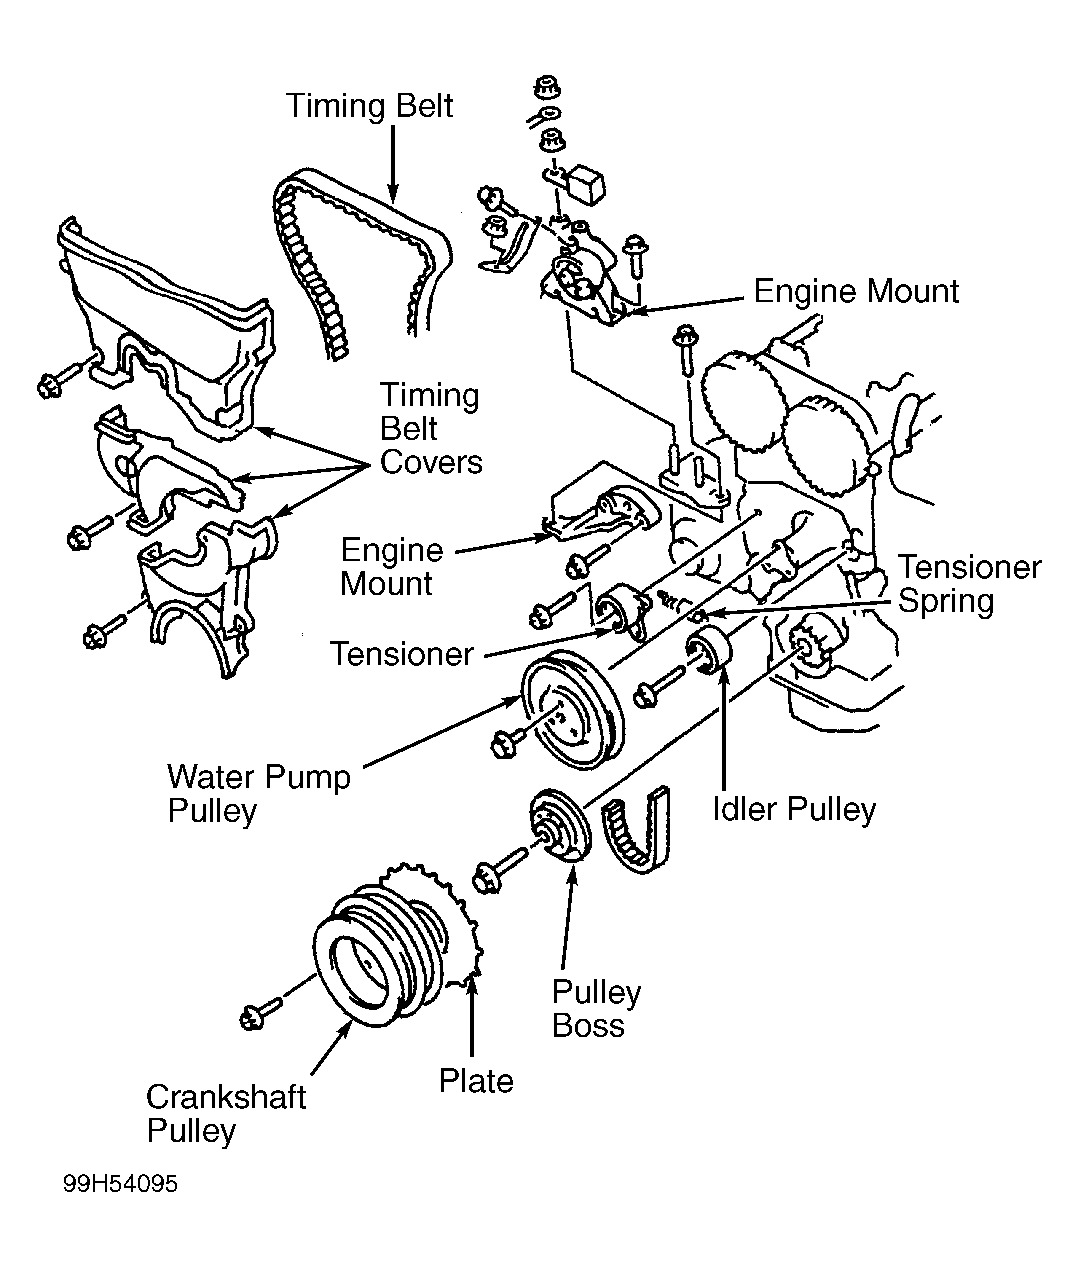 hight resolution of 2000 mazda mpv engine coolant diagram